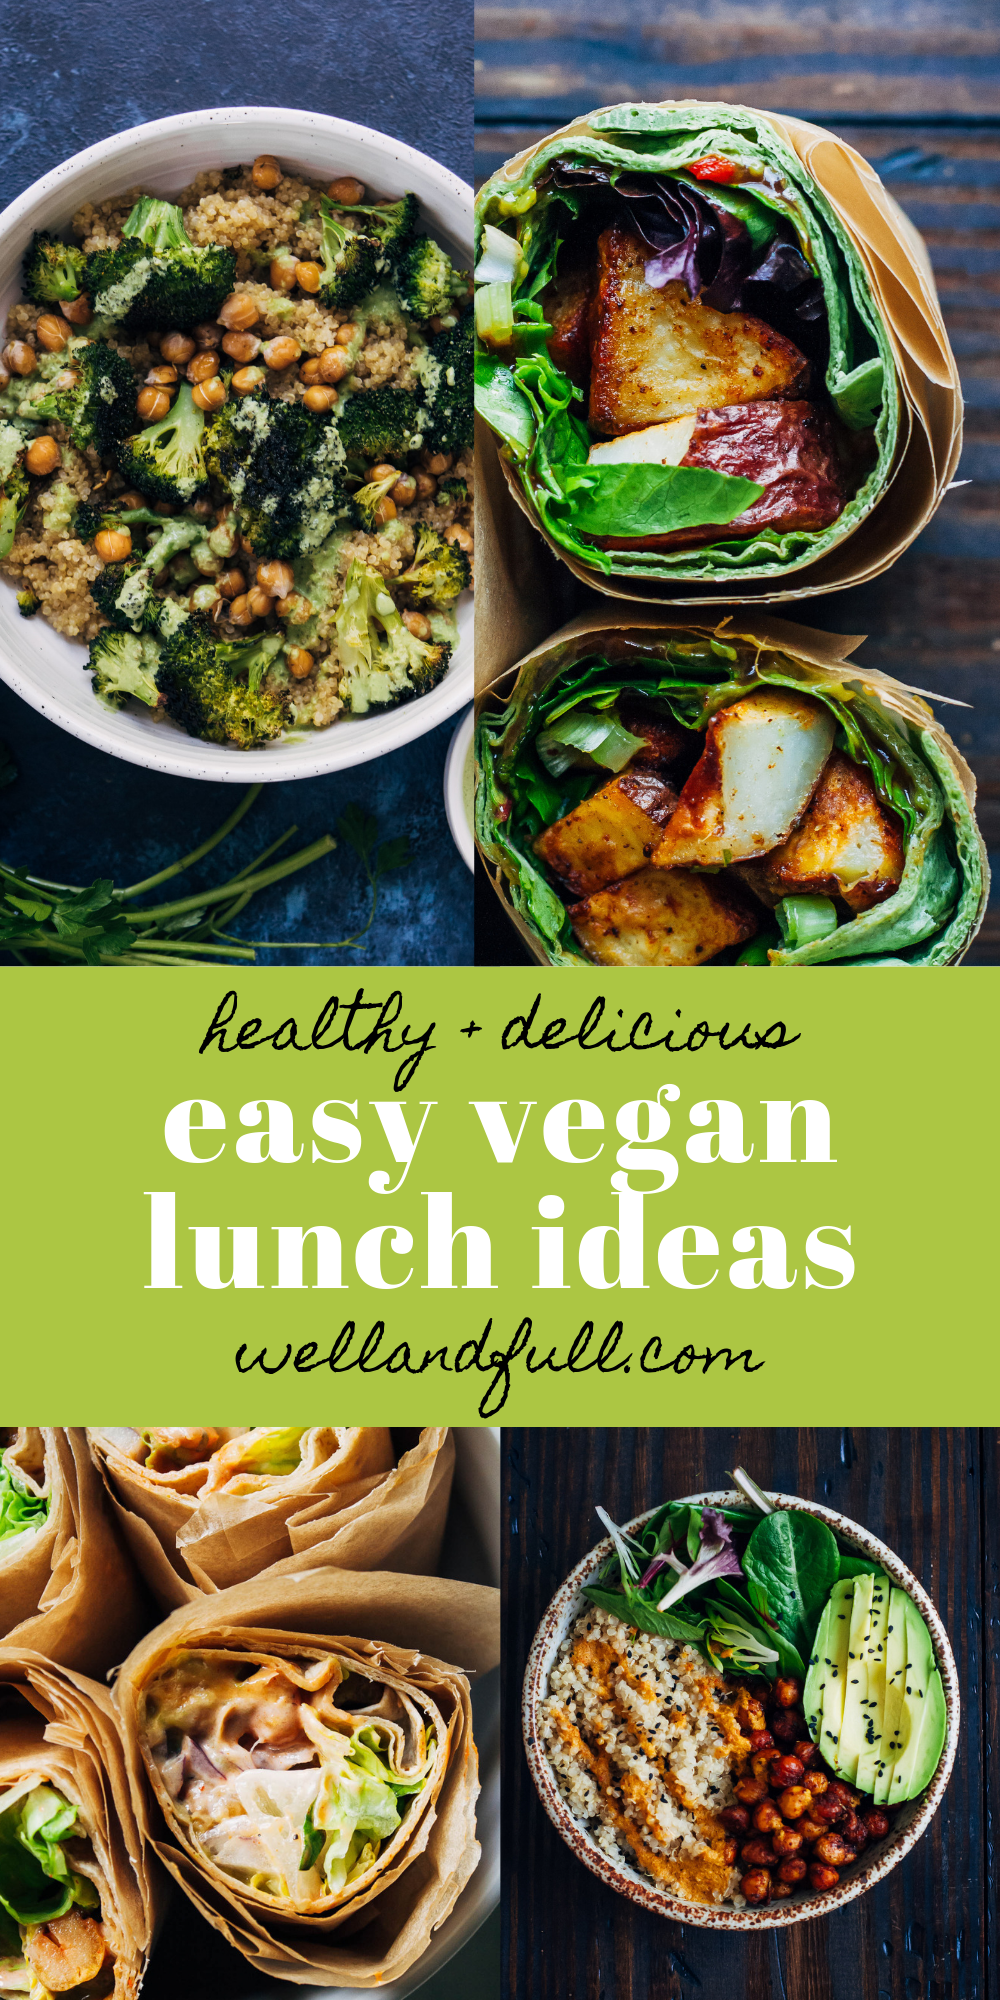 Easy Vegan Lunch Ideas | Well and Full